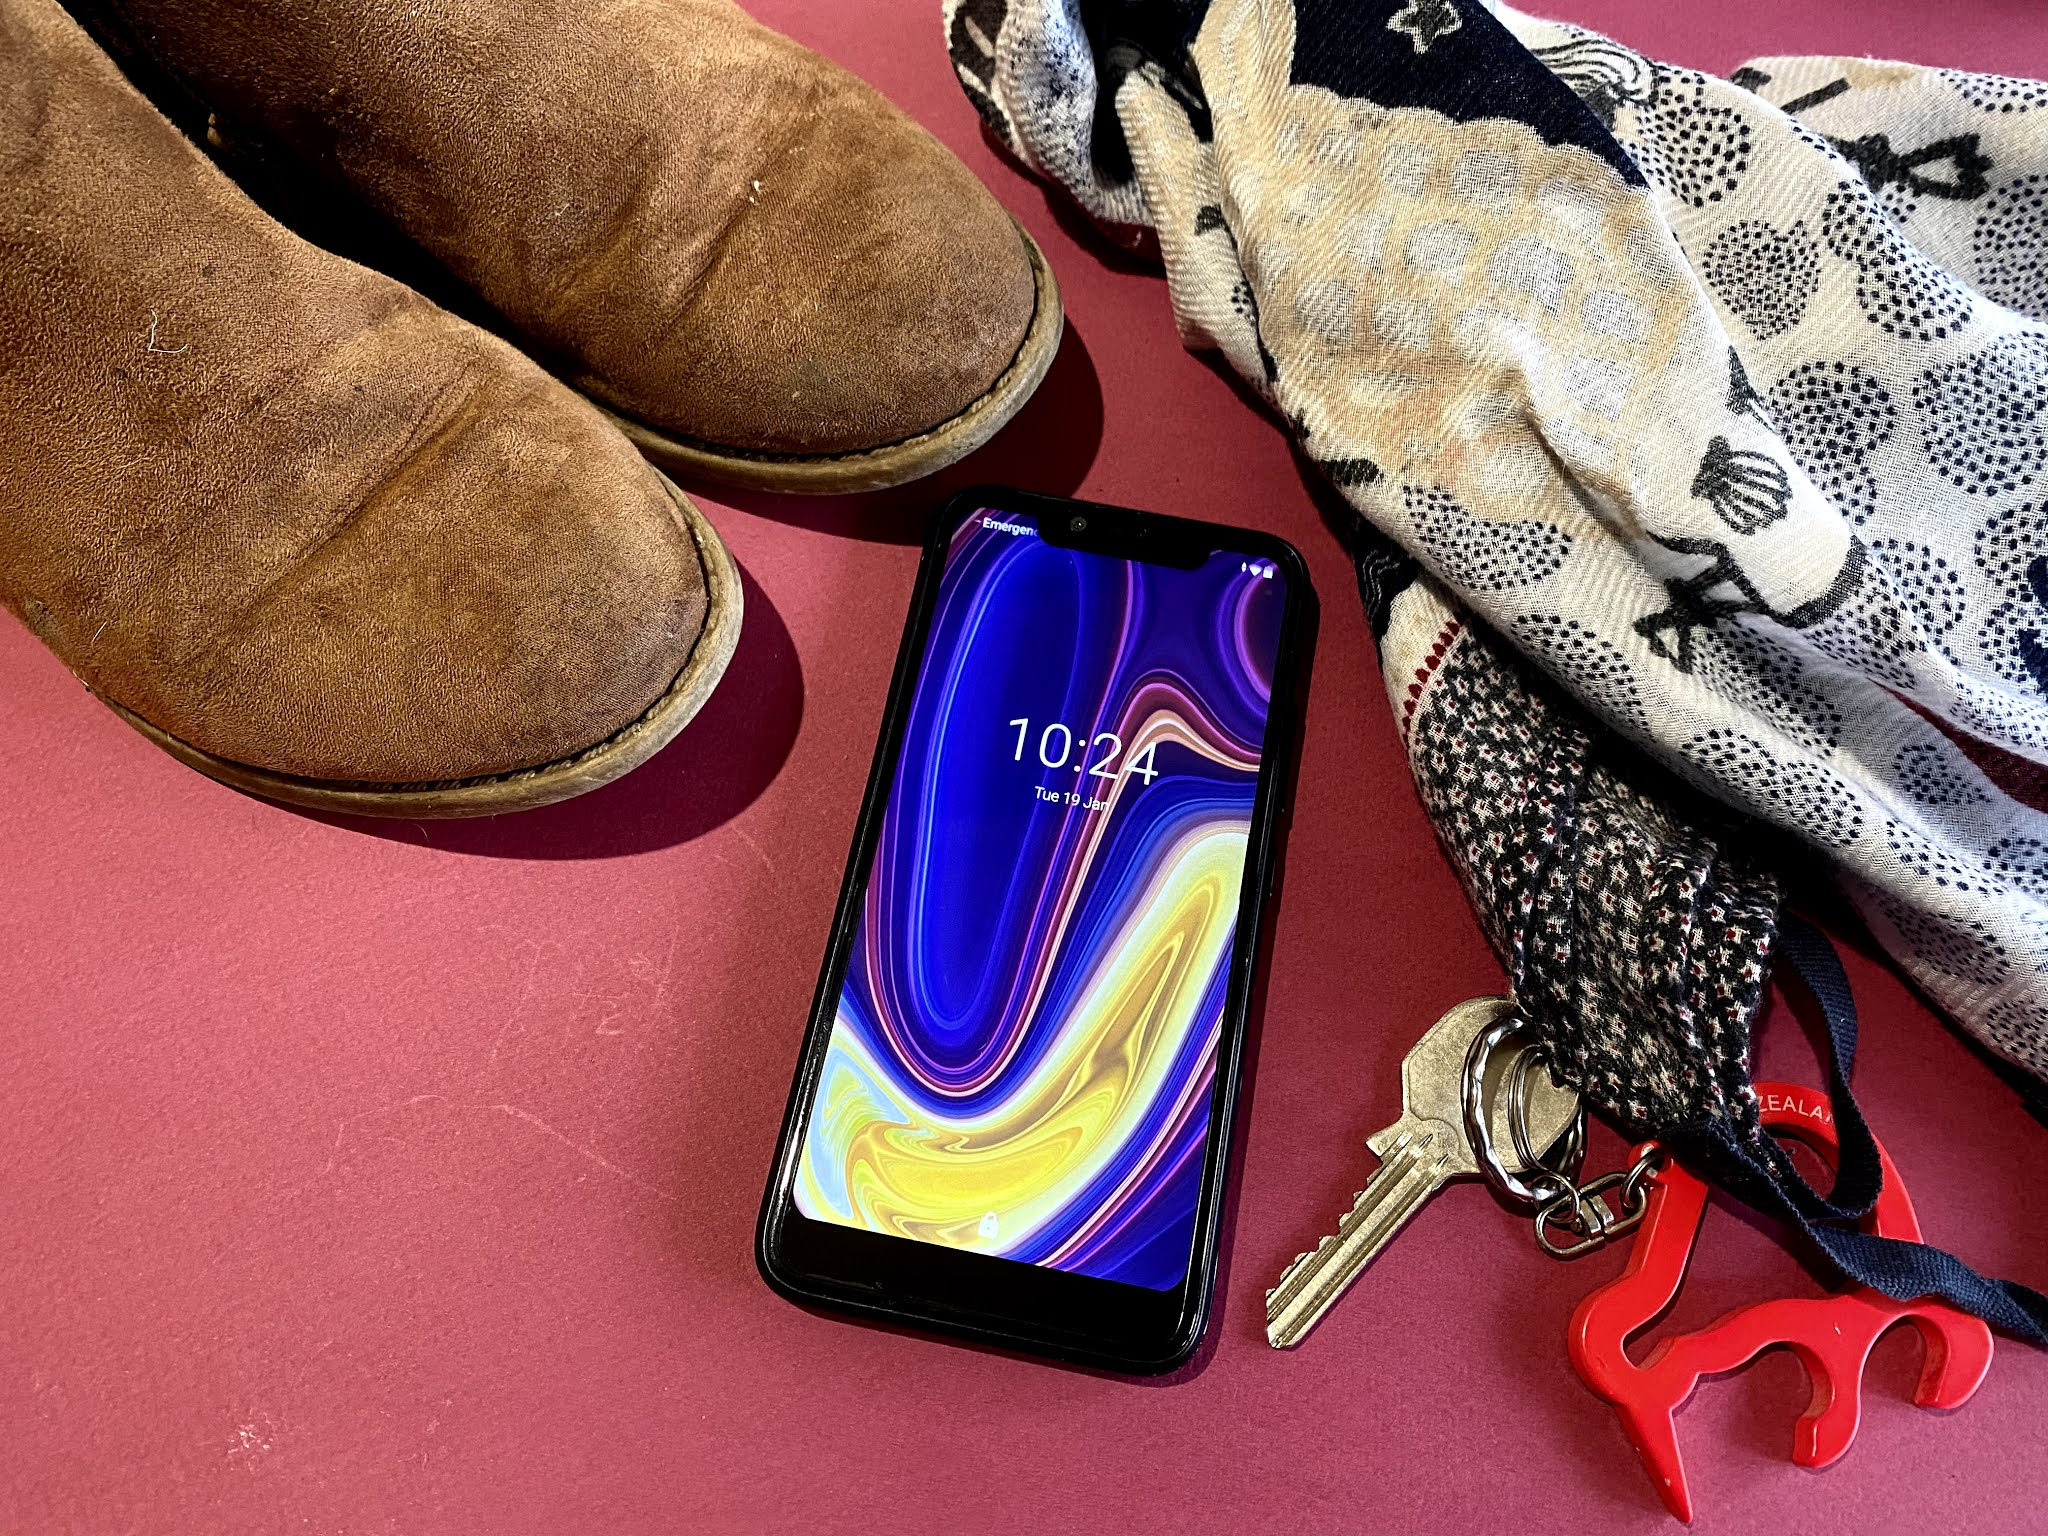 A cheap smartphone mobile next to a scarf, tween boots and keys